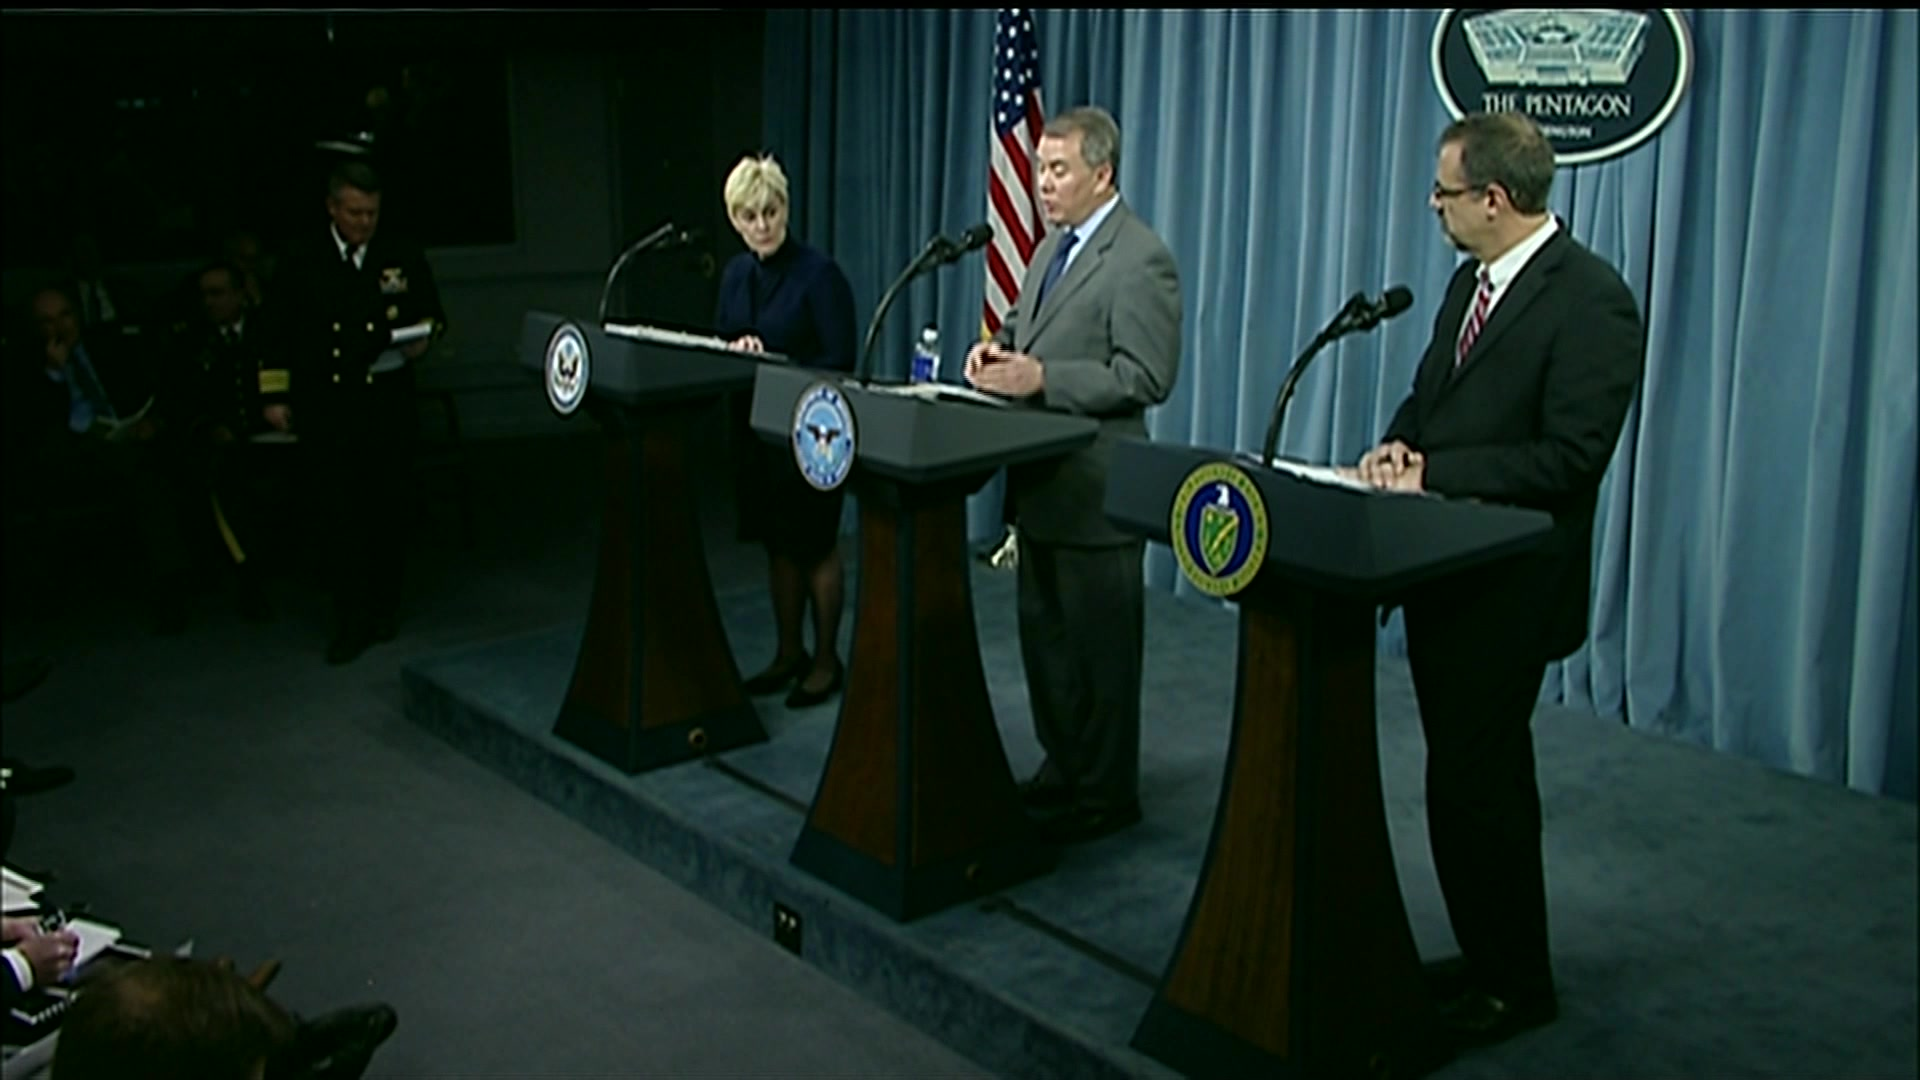 Deputy Defense Secretary Patrick M. Shanahan, Deputy Energy Secretary Dan Brouillette and Undersecretary of State for Political Affairs Thomas A. Shannon Jr. co-host the nuclear posture review rollout during a press briefing at the Pentagon, Feb. 2, 2018. After the rollout, Acting Assistant Secretary of State for Arms Control, Verification and Compliance Anita E. Friedt, Undersecretary of Defense for Policy John C. Rood and Acting Undersecretary for Nuclear Security and National Nuclear Security Administration Administrator Steve Erhart answer questions from reporters.